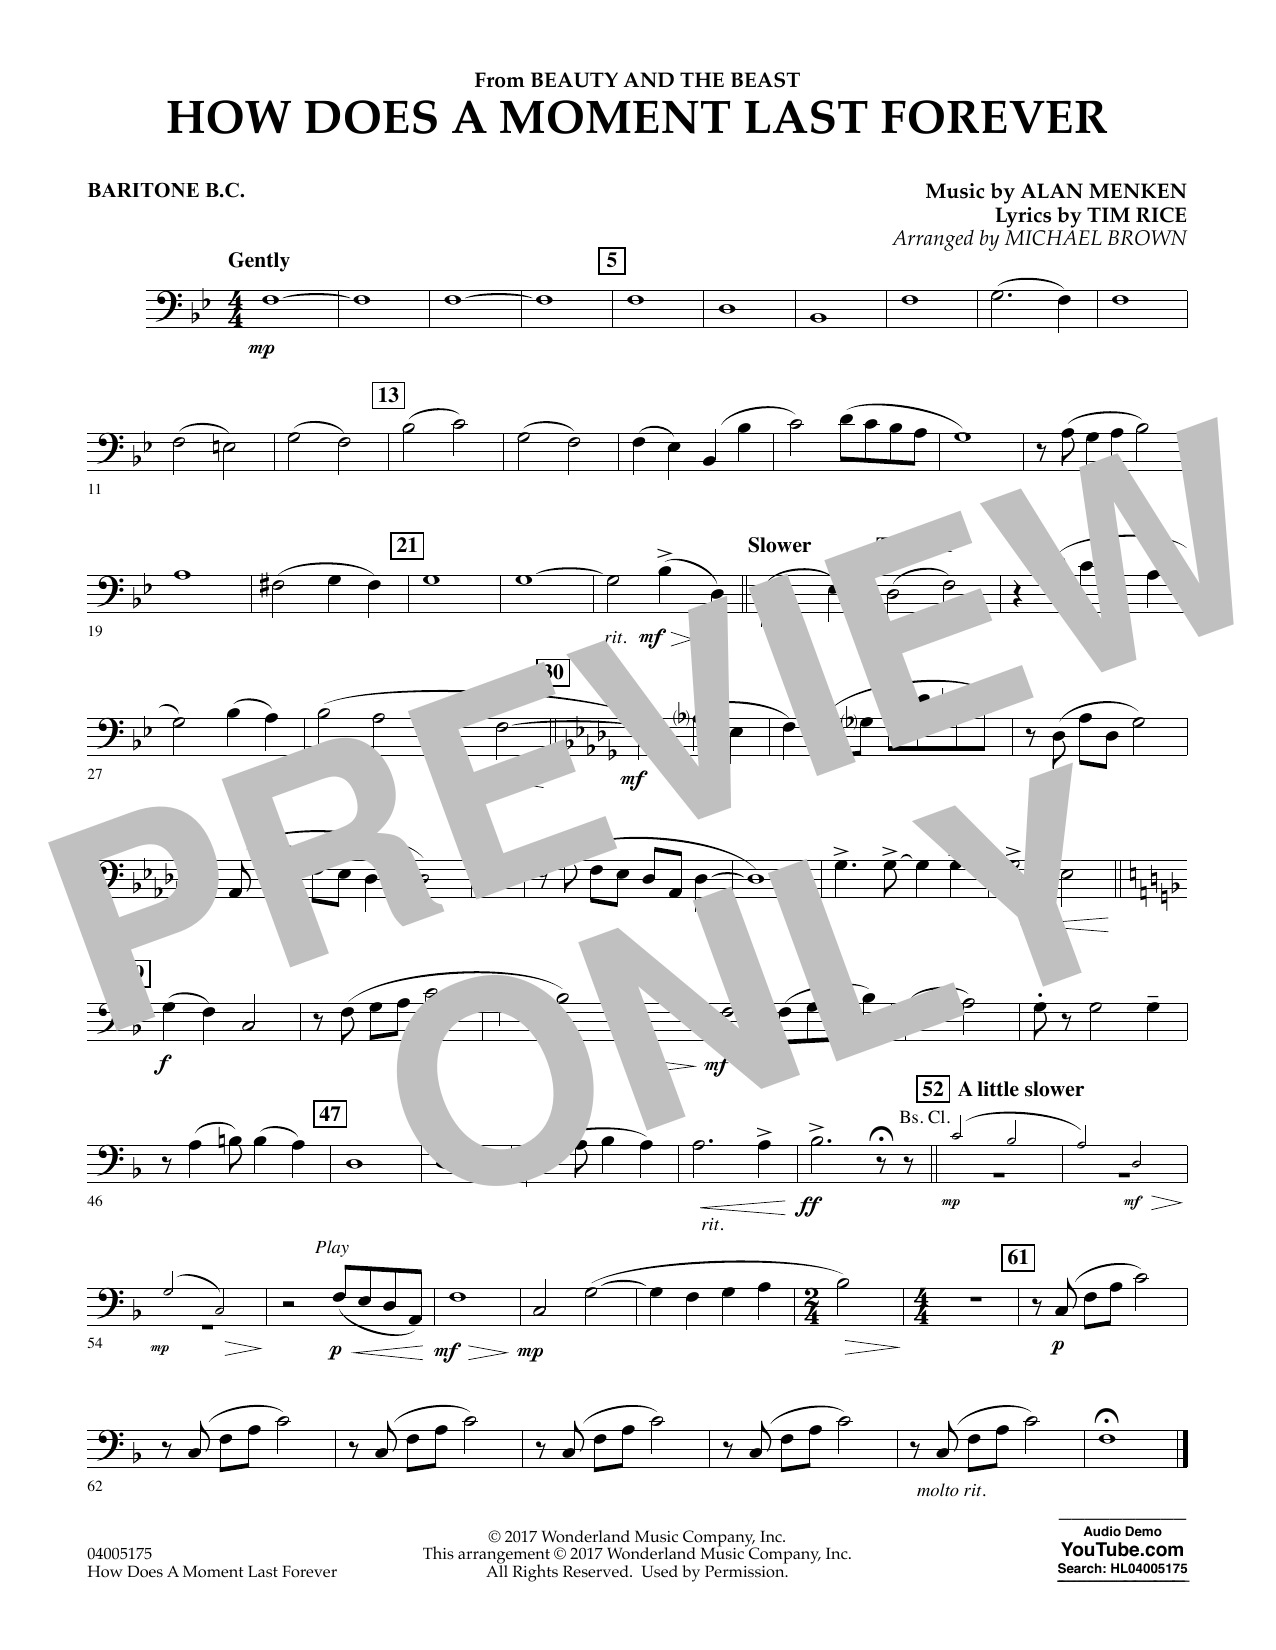 How Does a Moment Last Forever (from Beauty and the Beast) - Baritone B.C. (Concert Band)